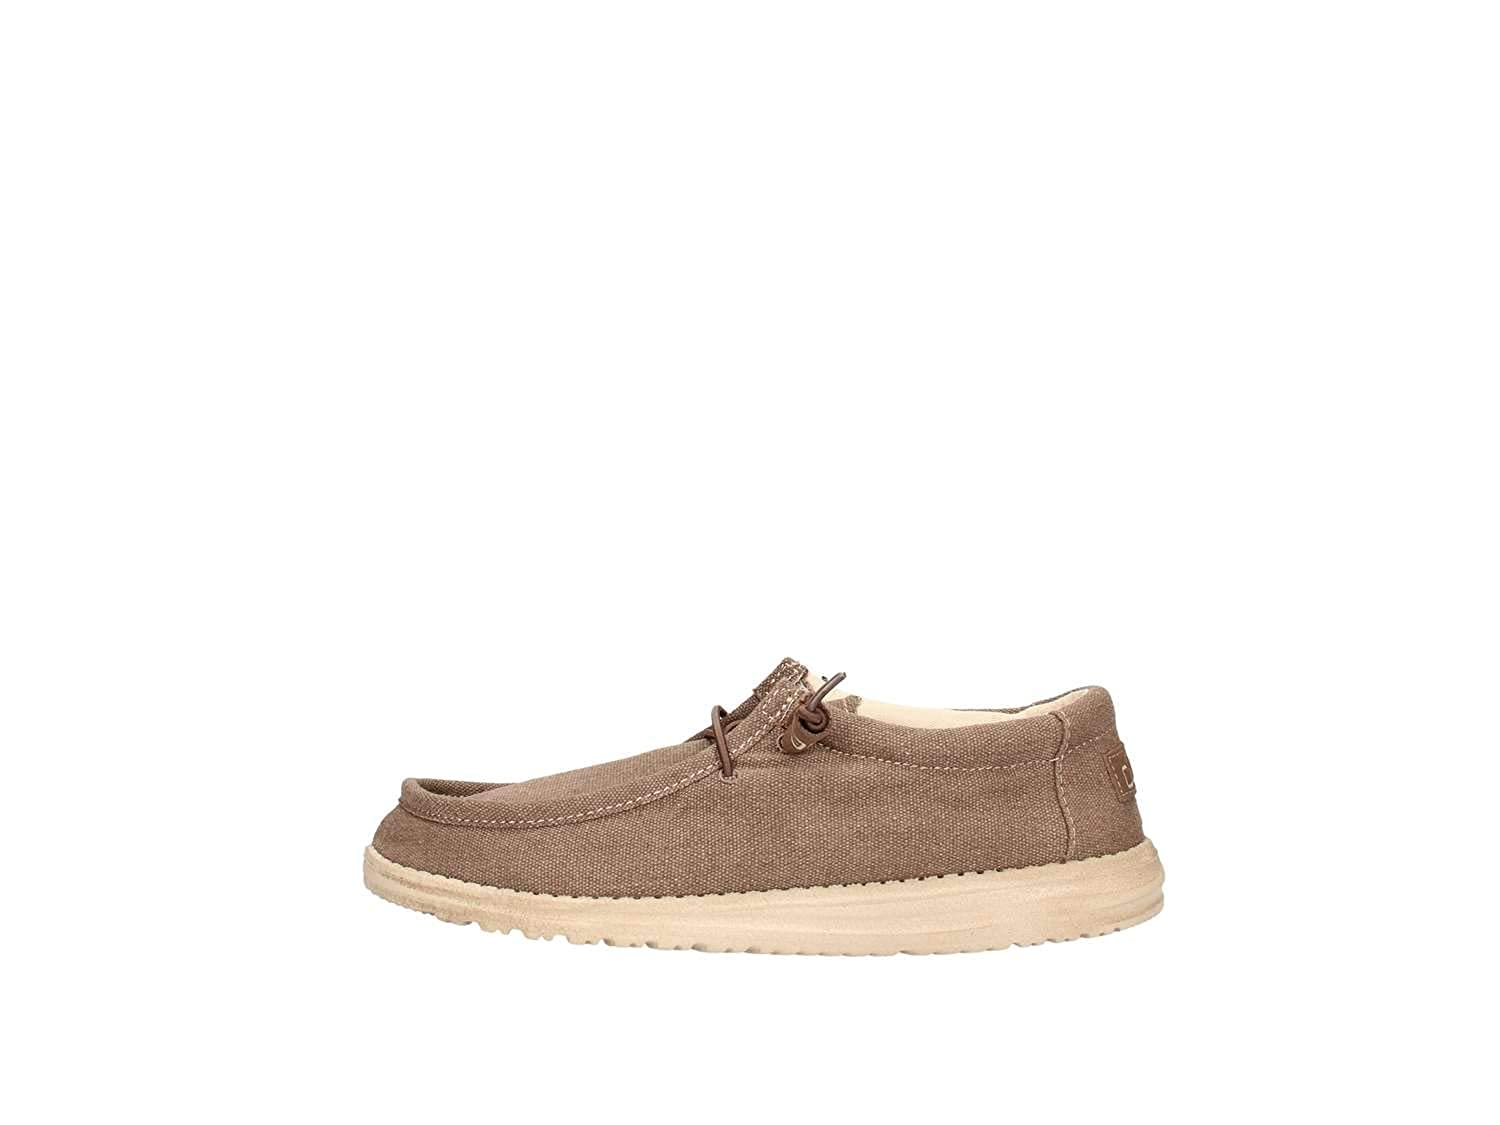 TALLA 41 EU. Dude Shoes Men's Wally Classic Wenge